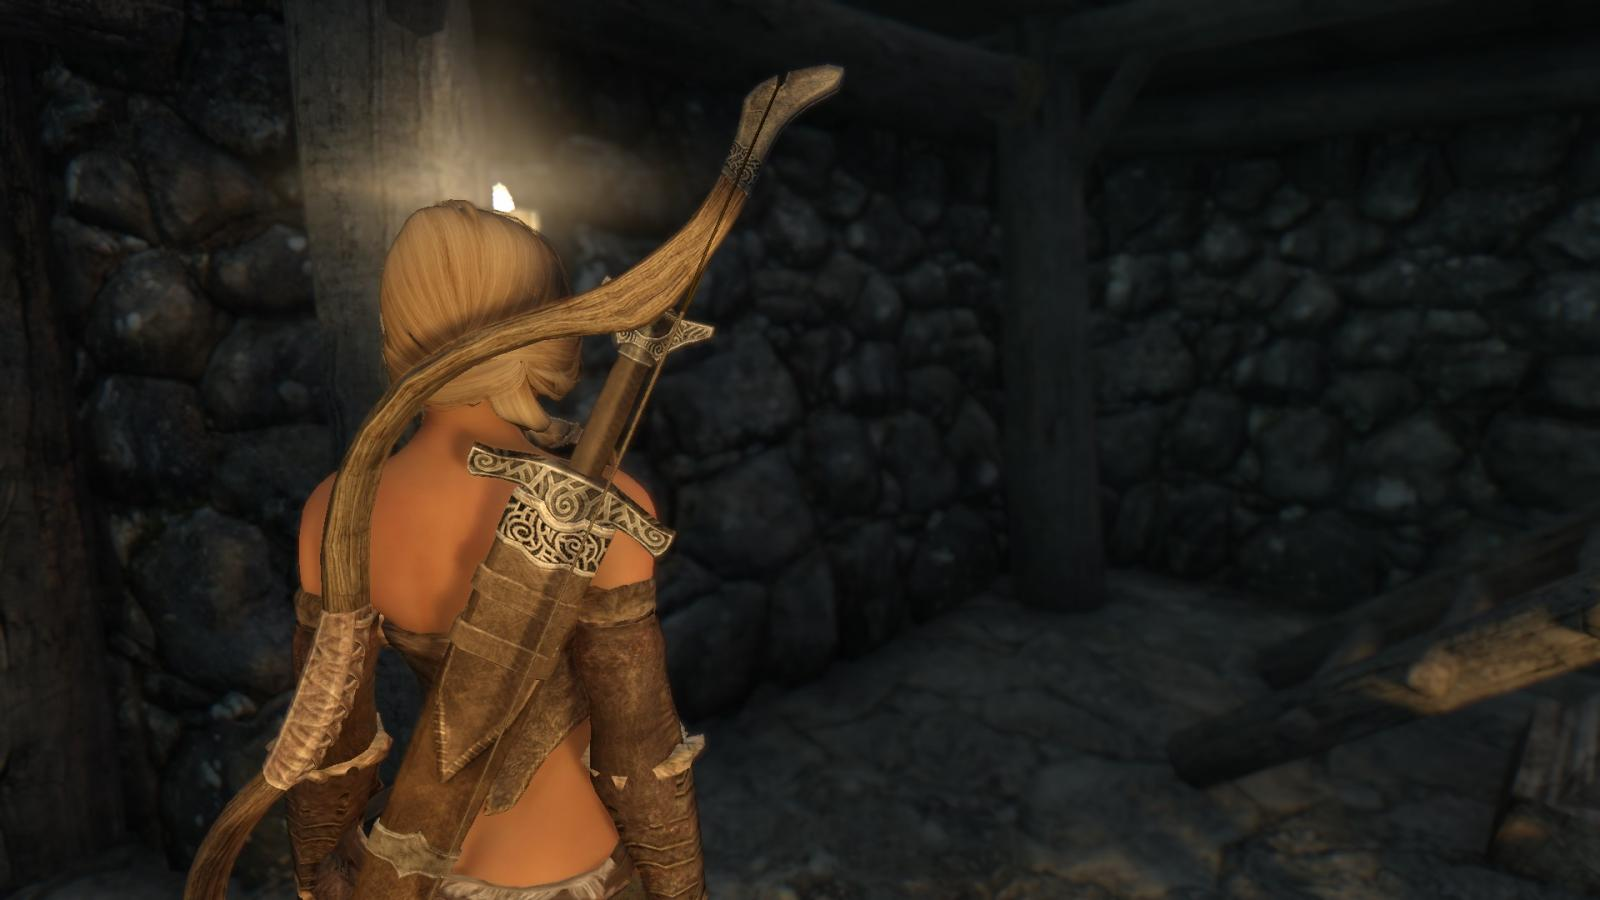 Another capture of Anatriax's immersive Skyrim dev capture